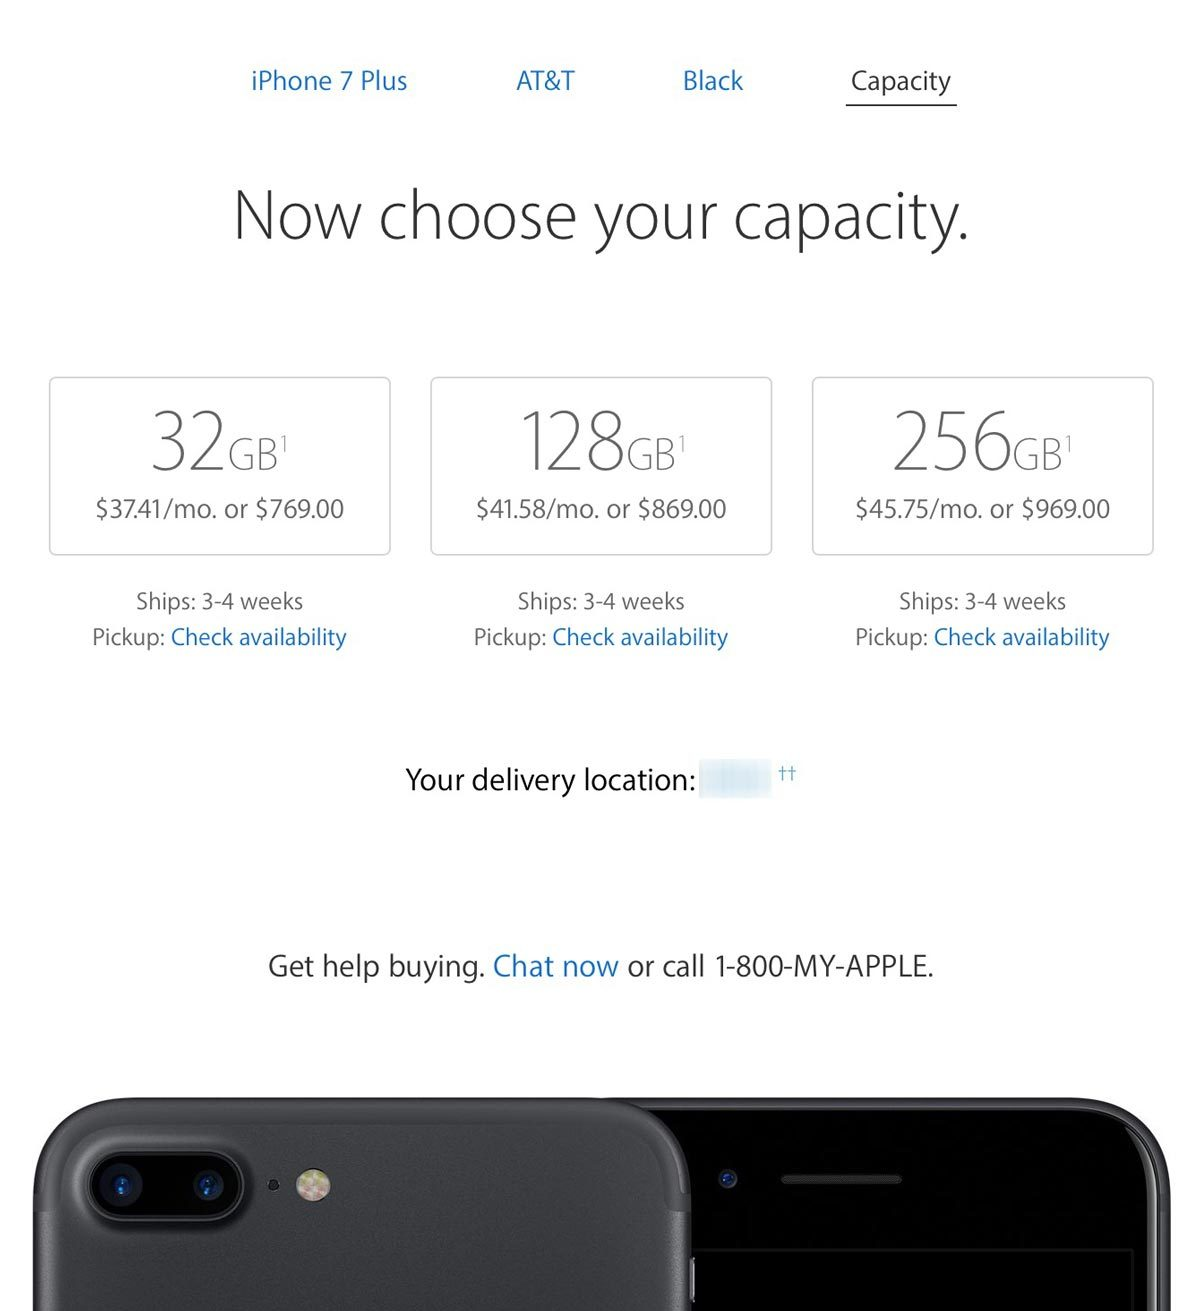 Screenshot Showing iPhone 7 Plus Availability